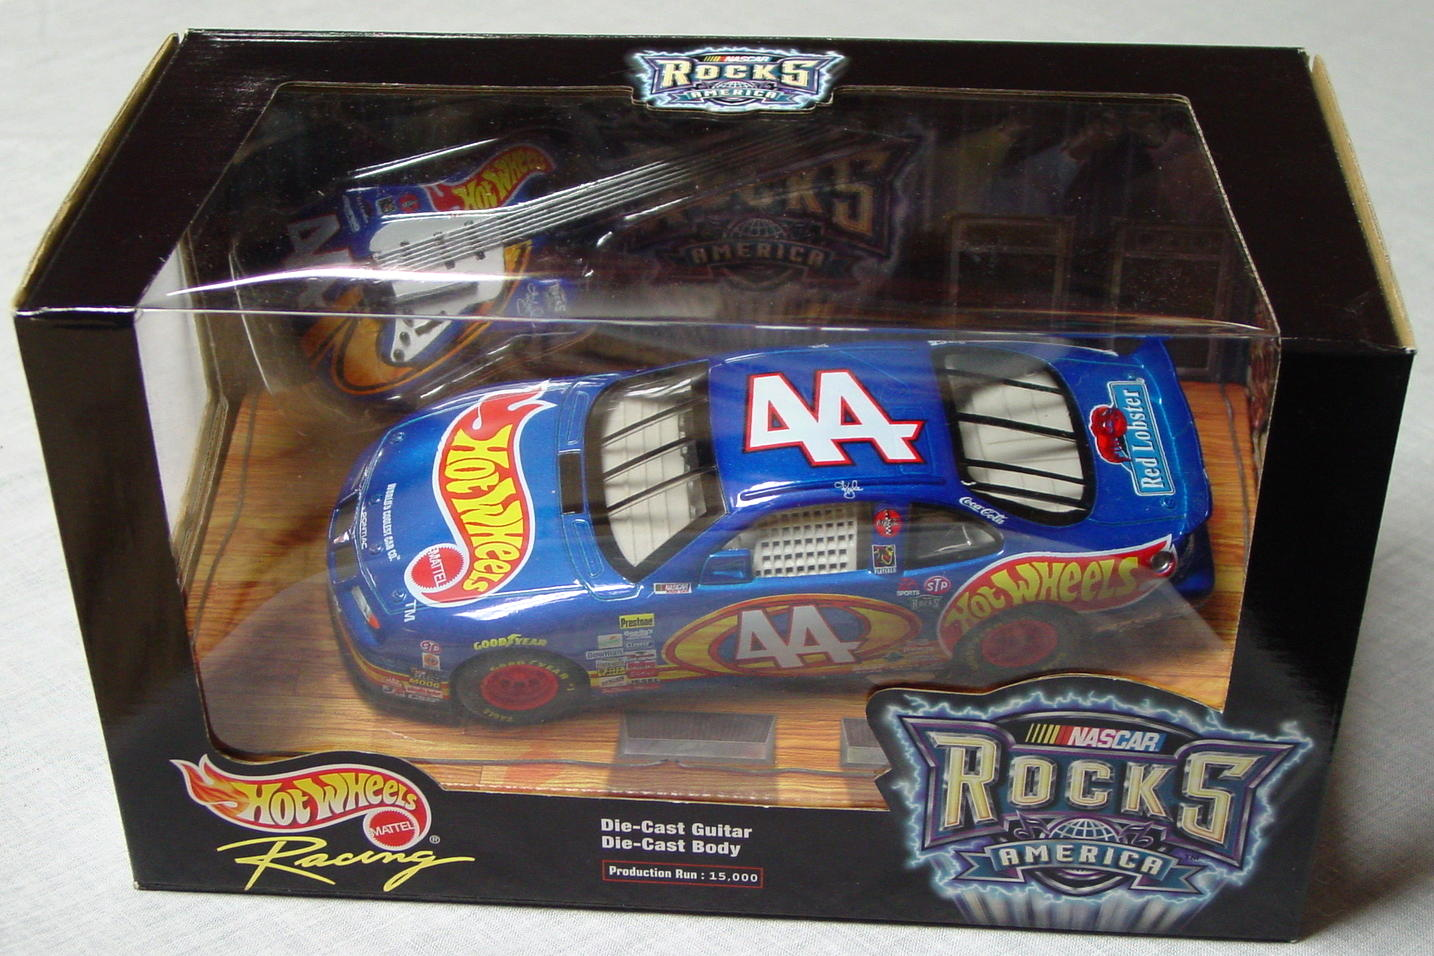 1_24 Scale - HW NASCAR Rocks Kyle Petty 1/15000 44